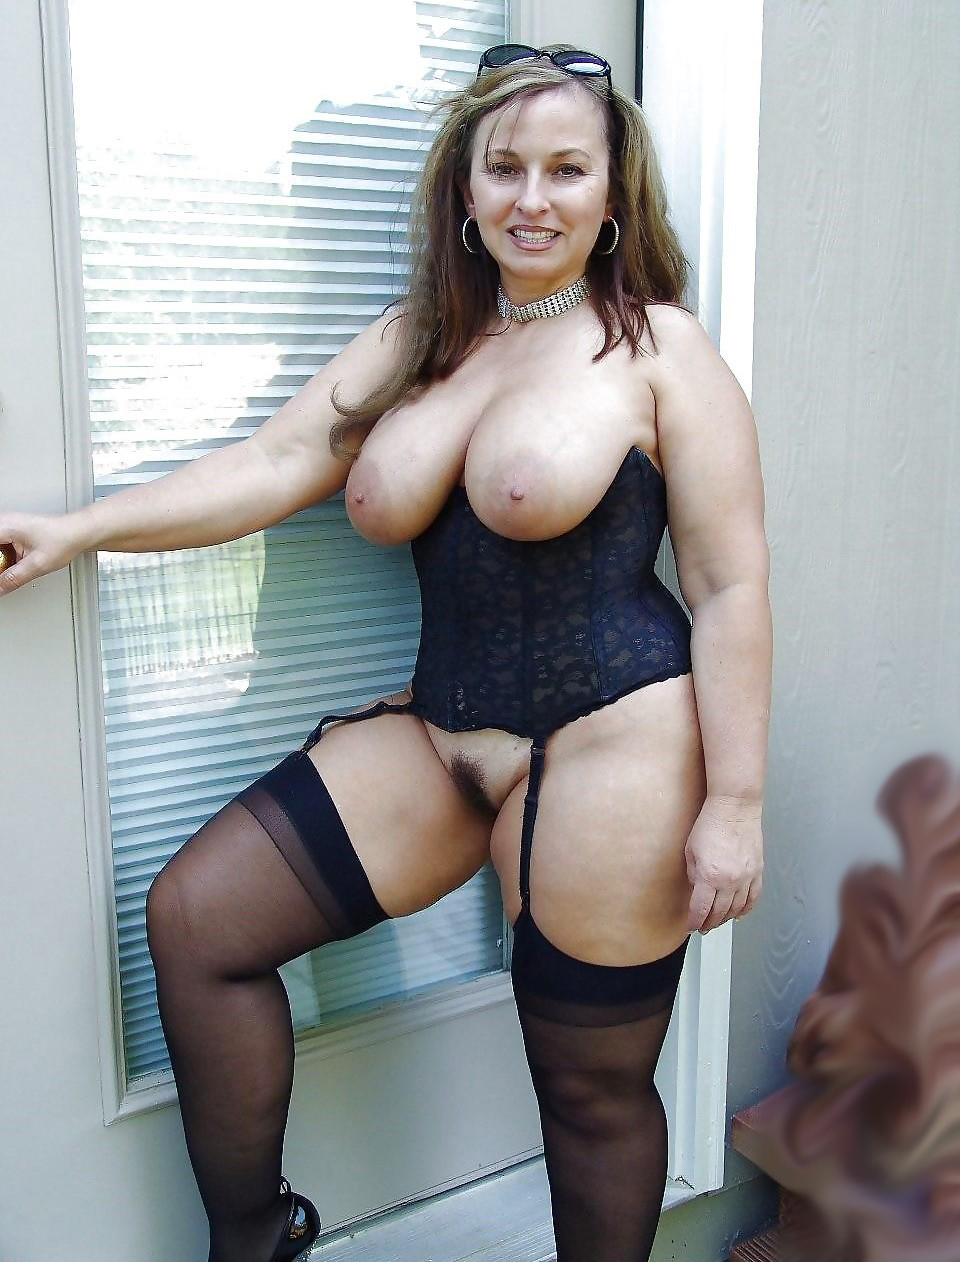 image A hot milf and her magic wand w sound